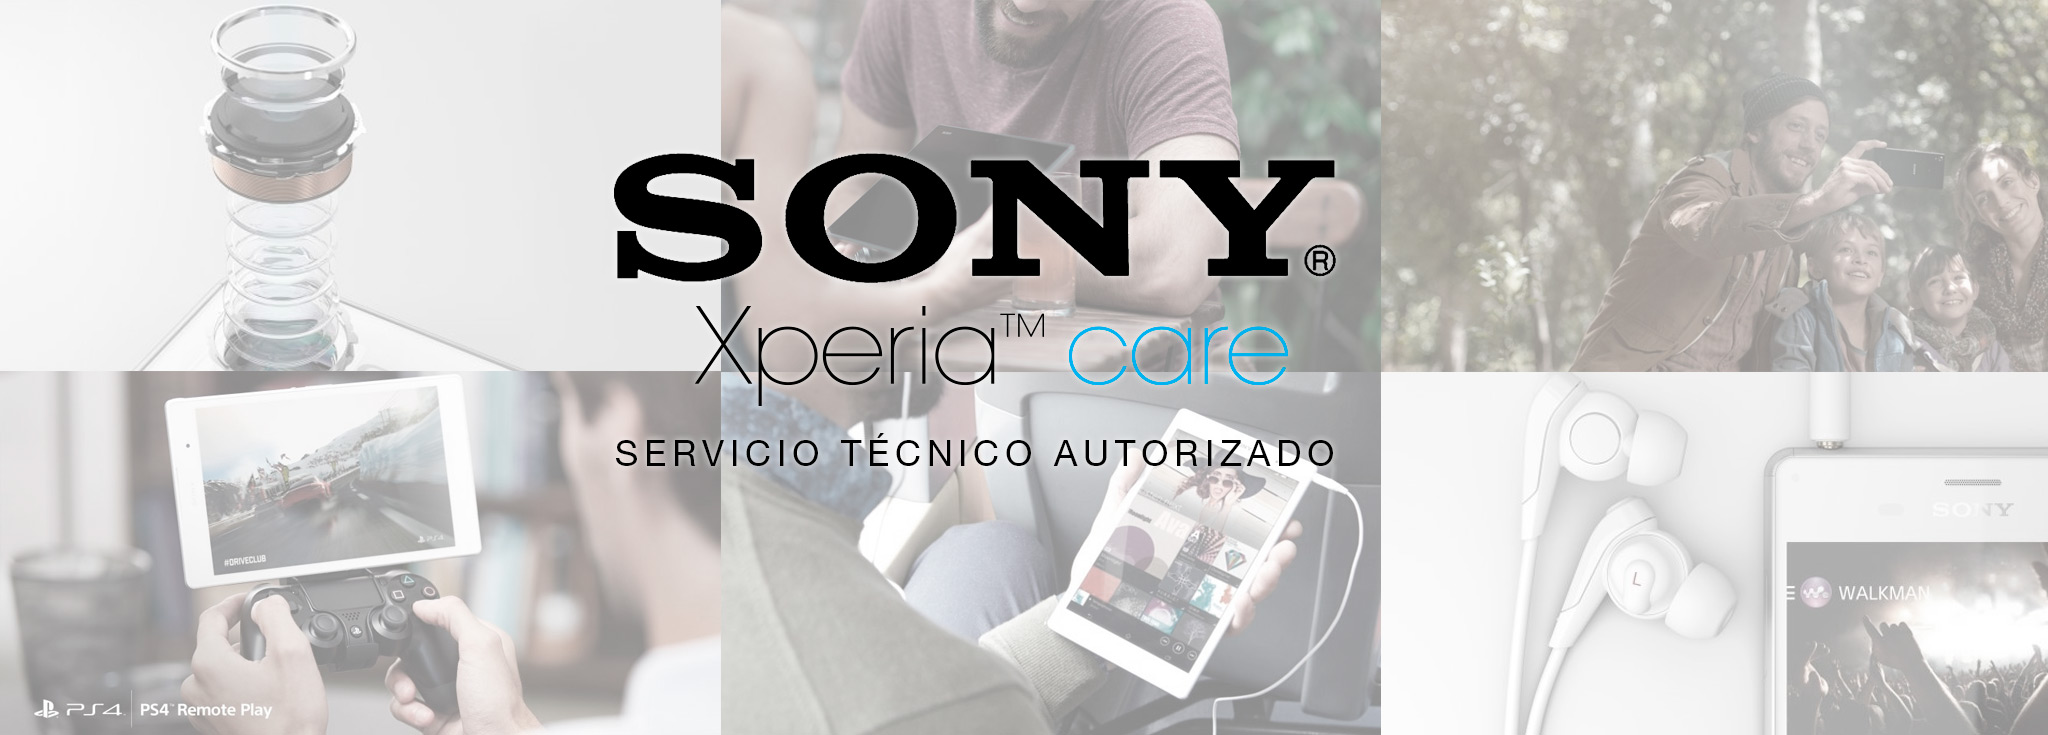 SONY Xperia Care